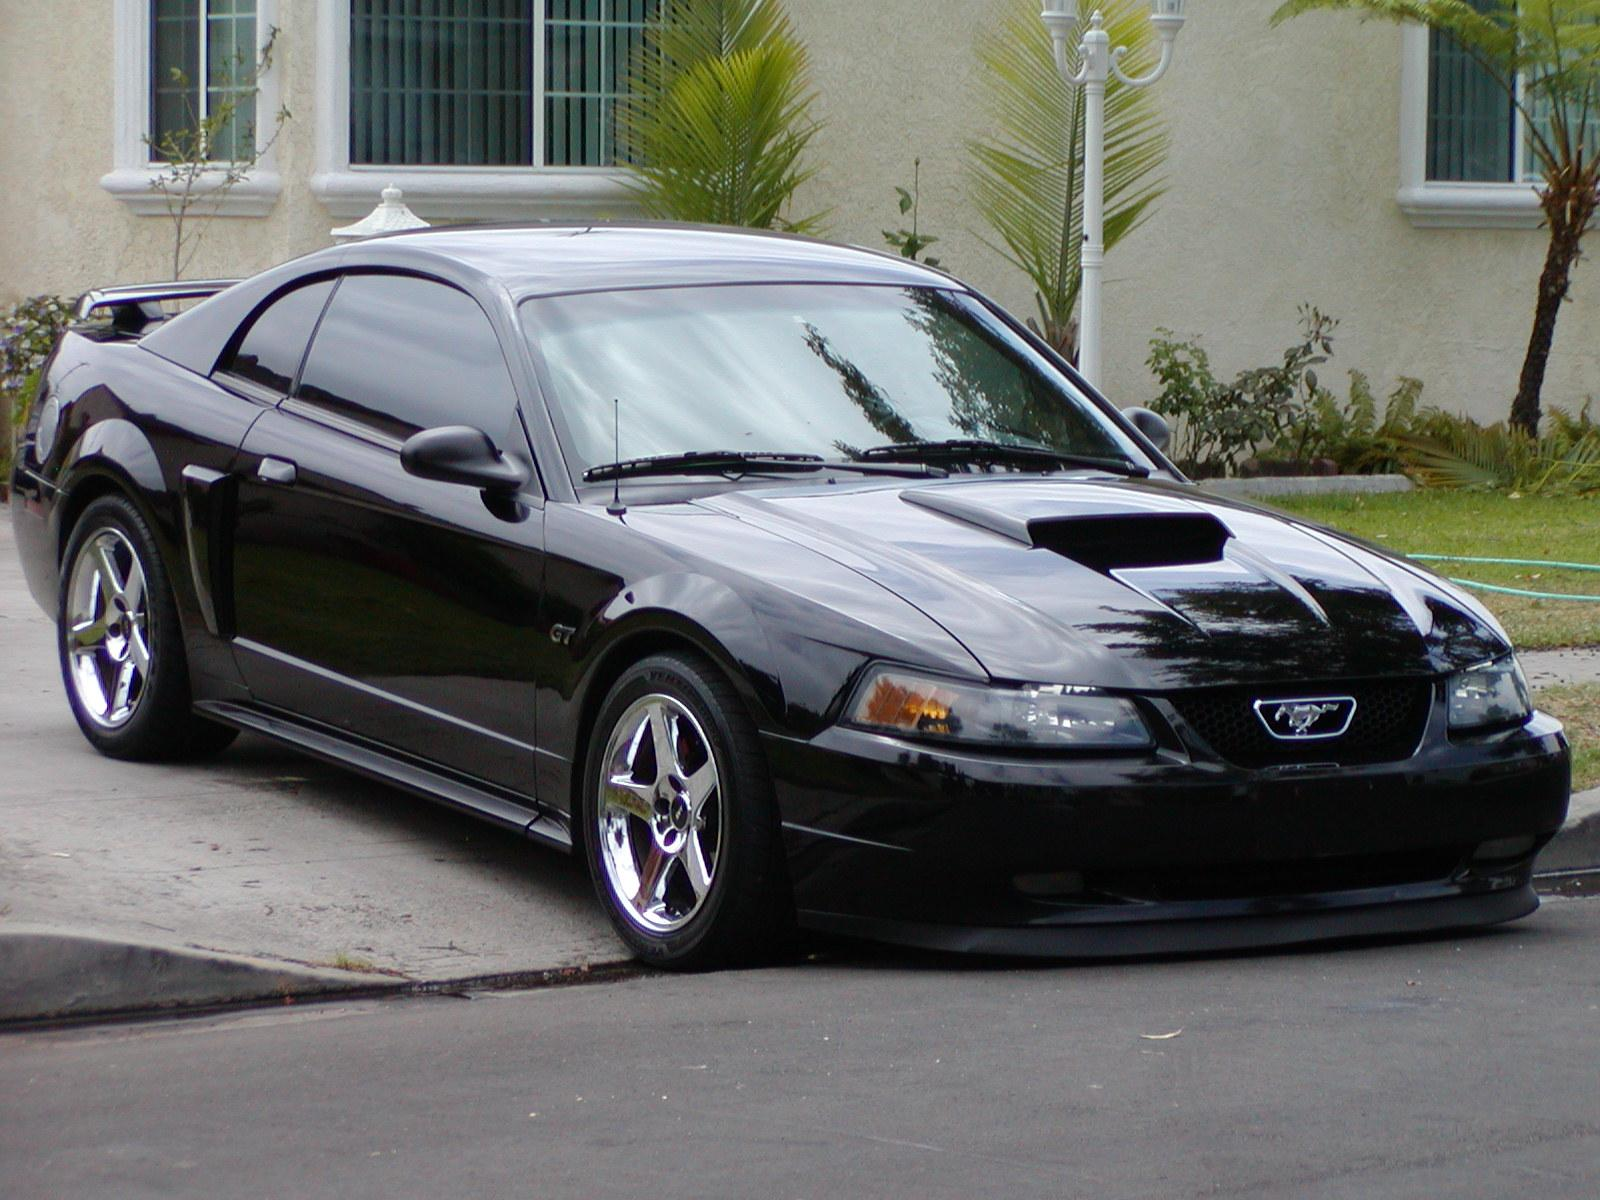 John Gt 2001 Ford Mustanggt Coupe 2d Specs Photos